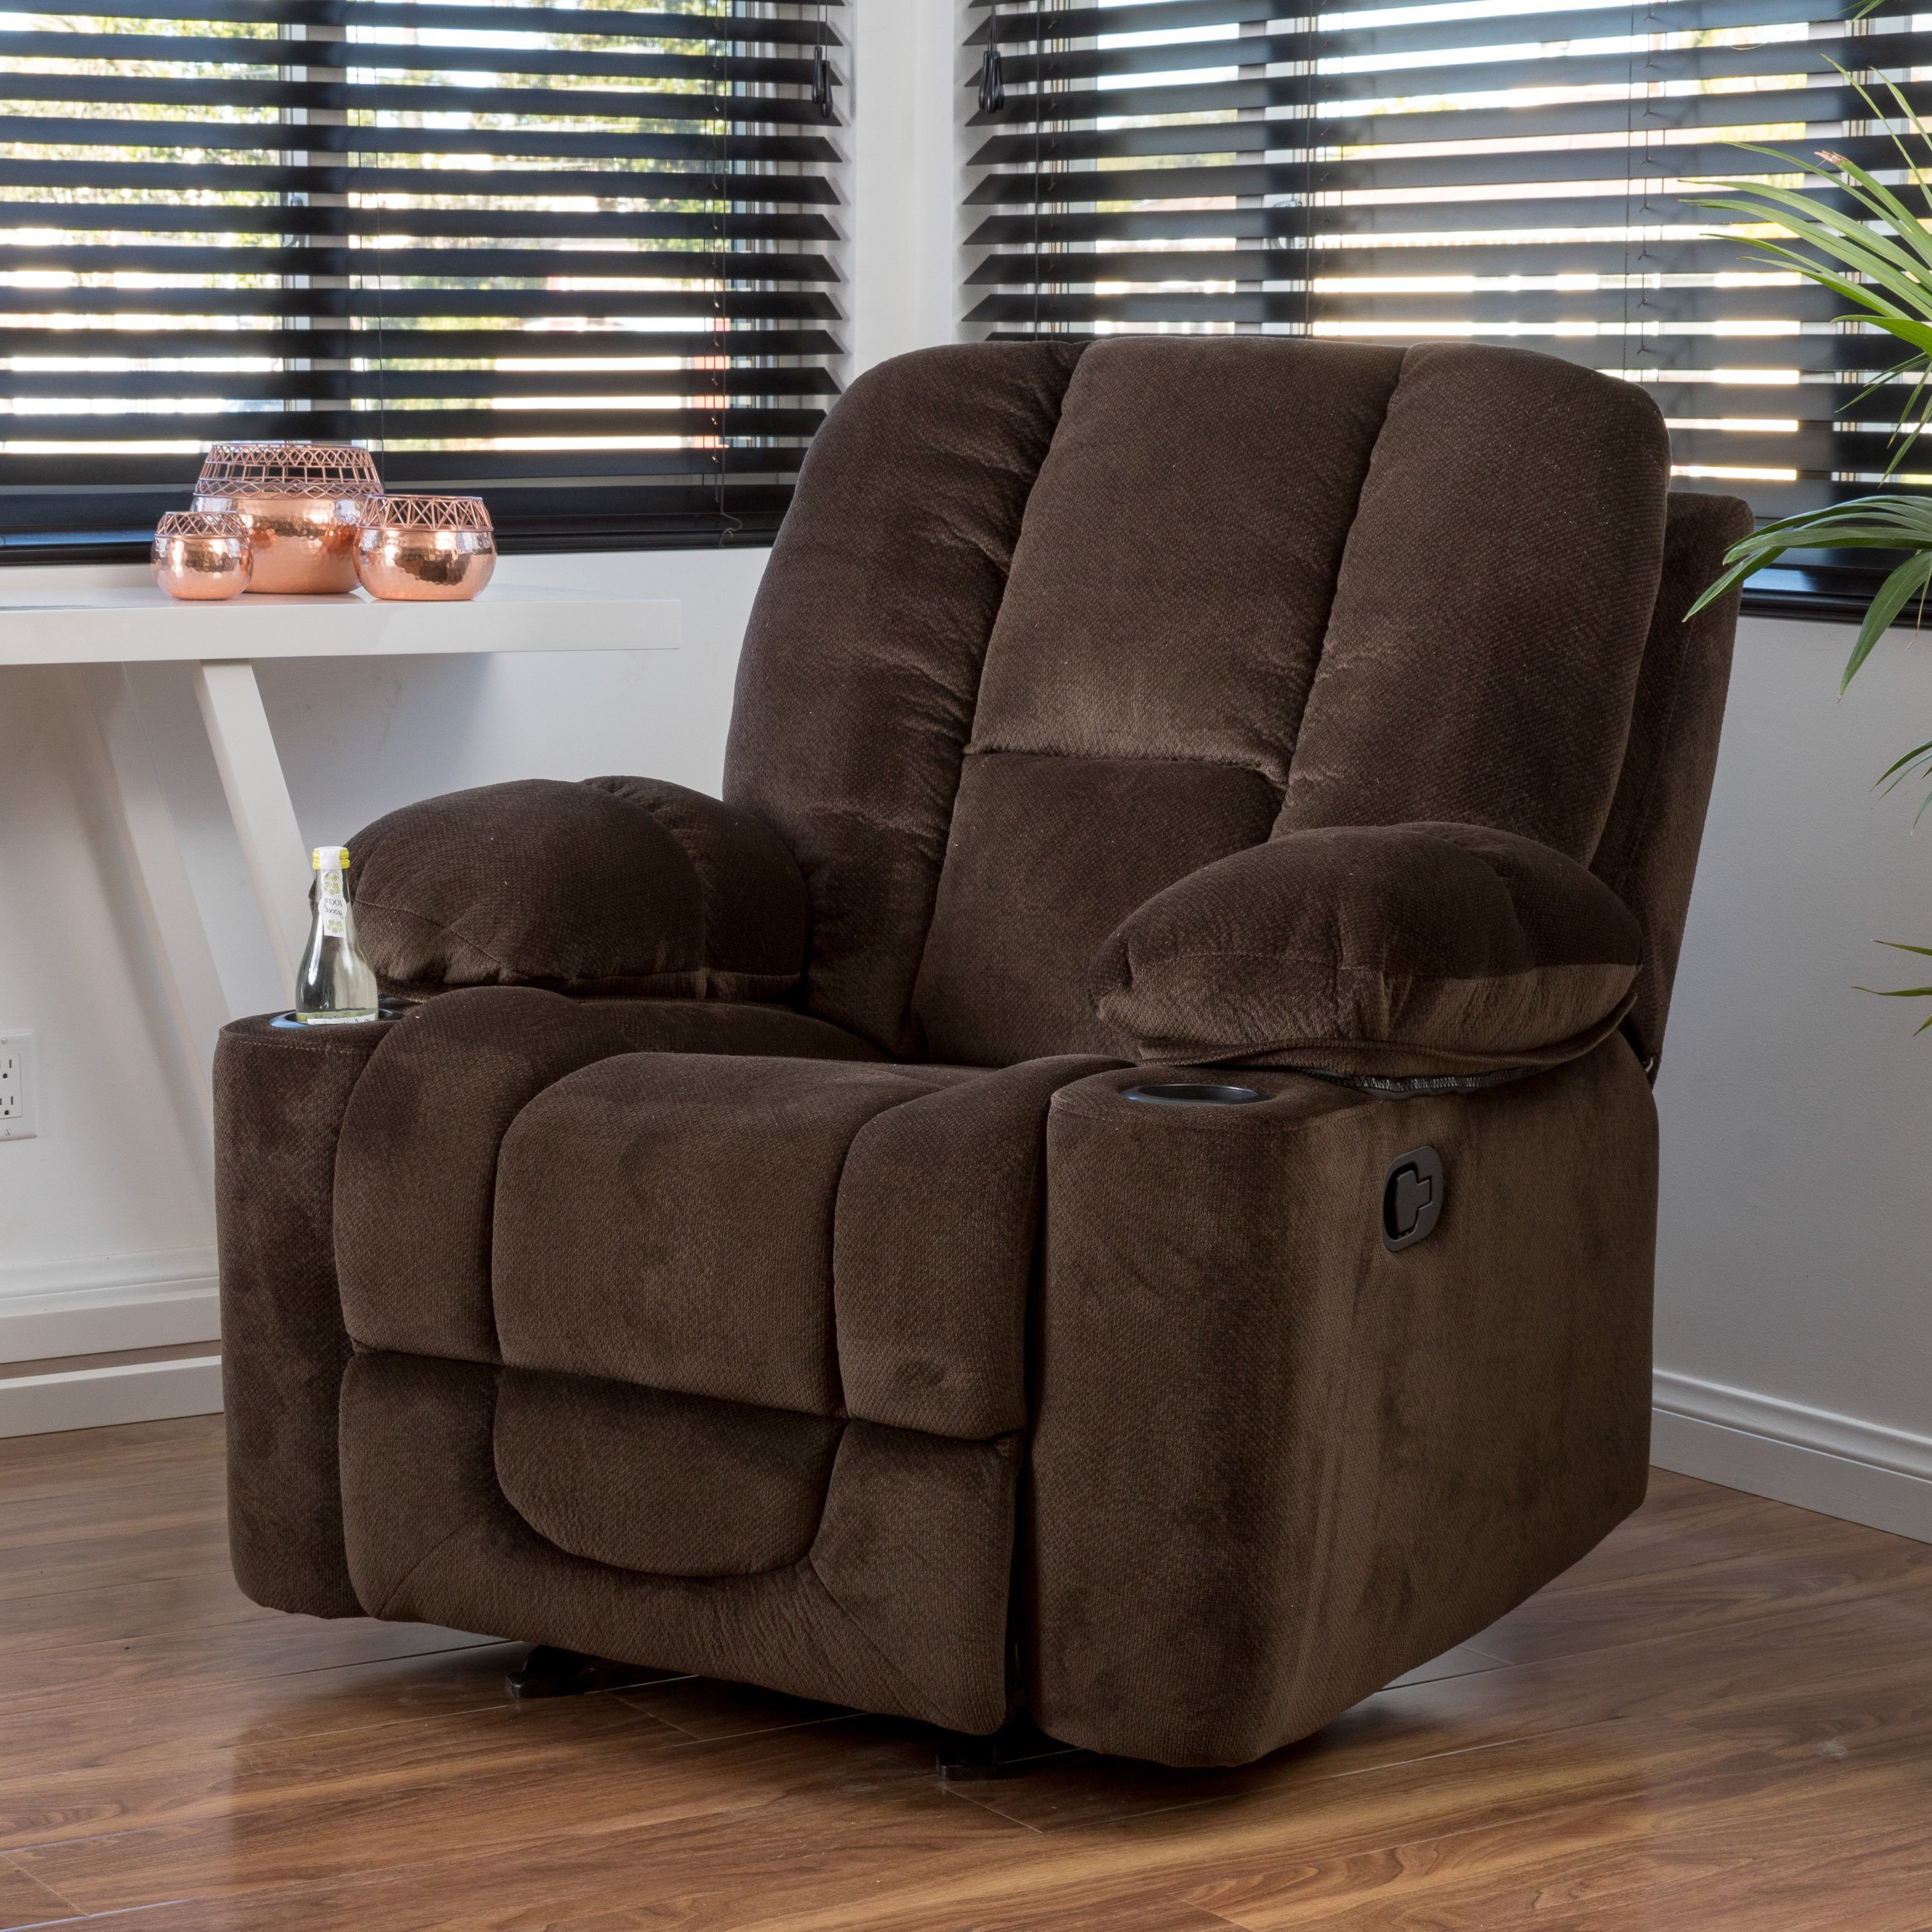 Shop Gannon Fabric Glider Recliner Club Chairchristopher Knight With Regard To 2019 Gannon Linen Power Swivel Recliners (Gallery 3 of 20)